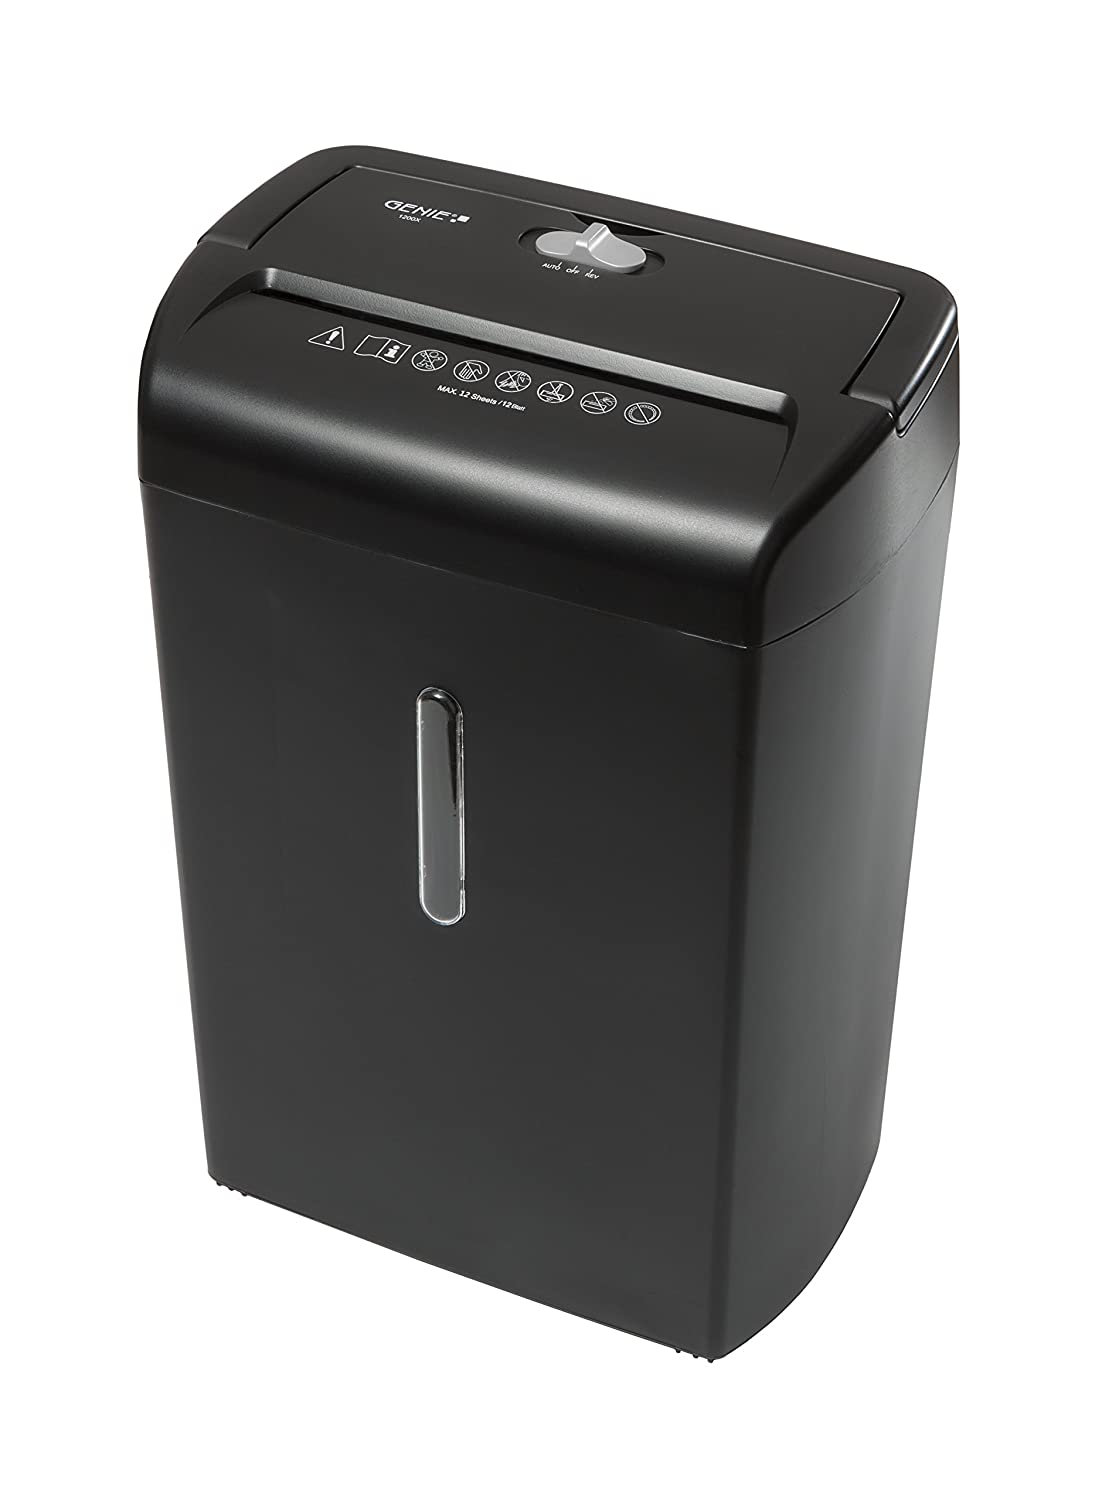 Genie 1200 XCD ad alta sicurezza distruggi documenti (fino a 12 fogli, Frammenti – shredder, incluso cestino) nero Frammenti - shredder 1200 X